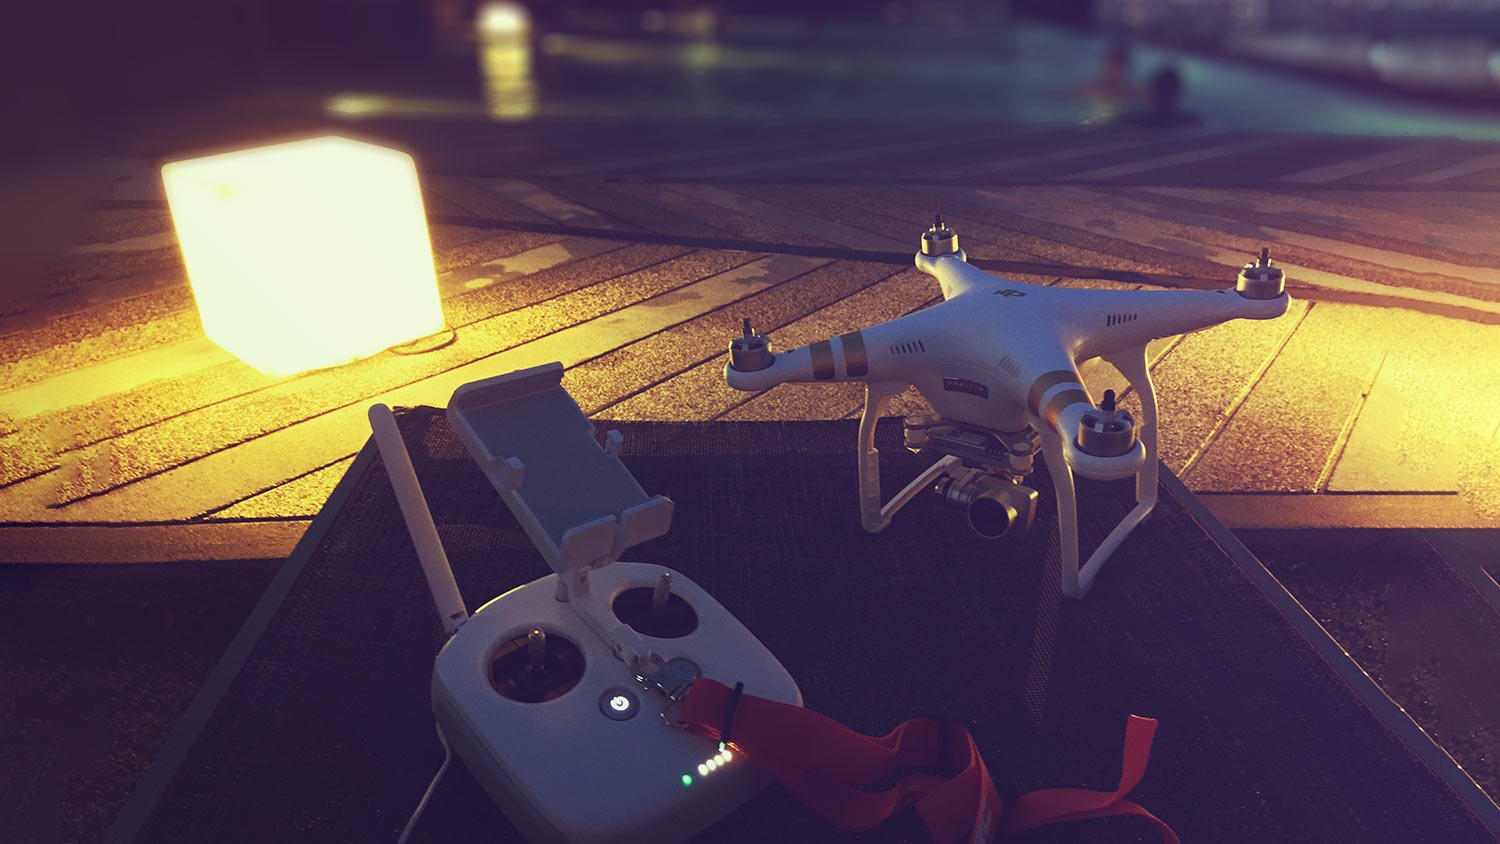 DJI Phantom 3 beside the pool